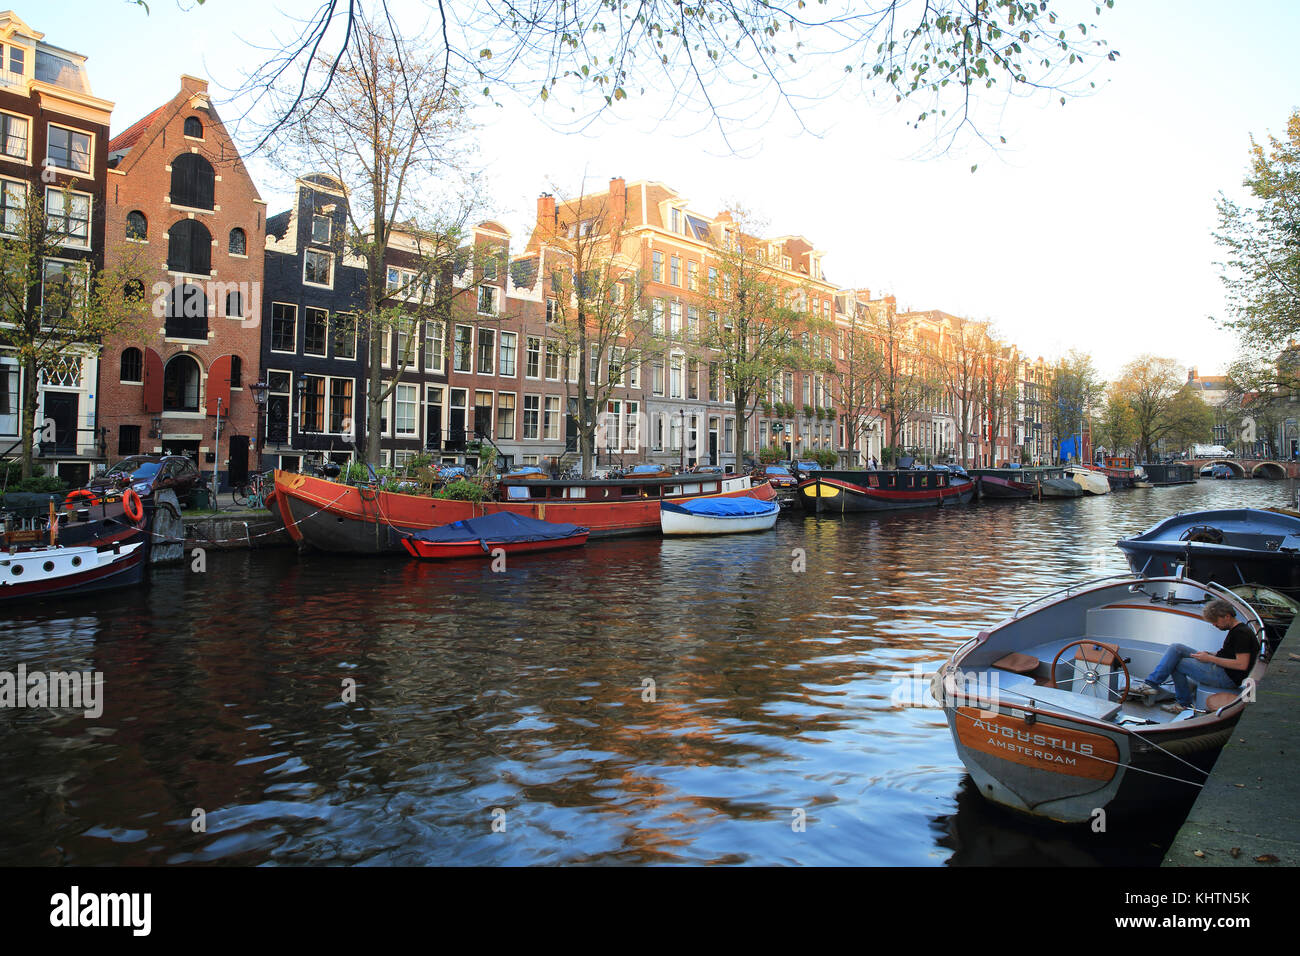 Typical houses and barges on the Prinsengracht canal, in Autumn, in Amsterdam, the Netherlands - Stock Image